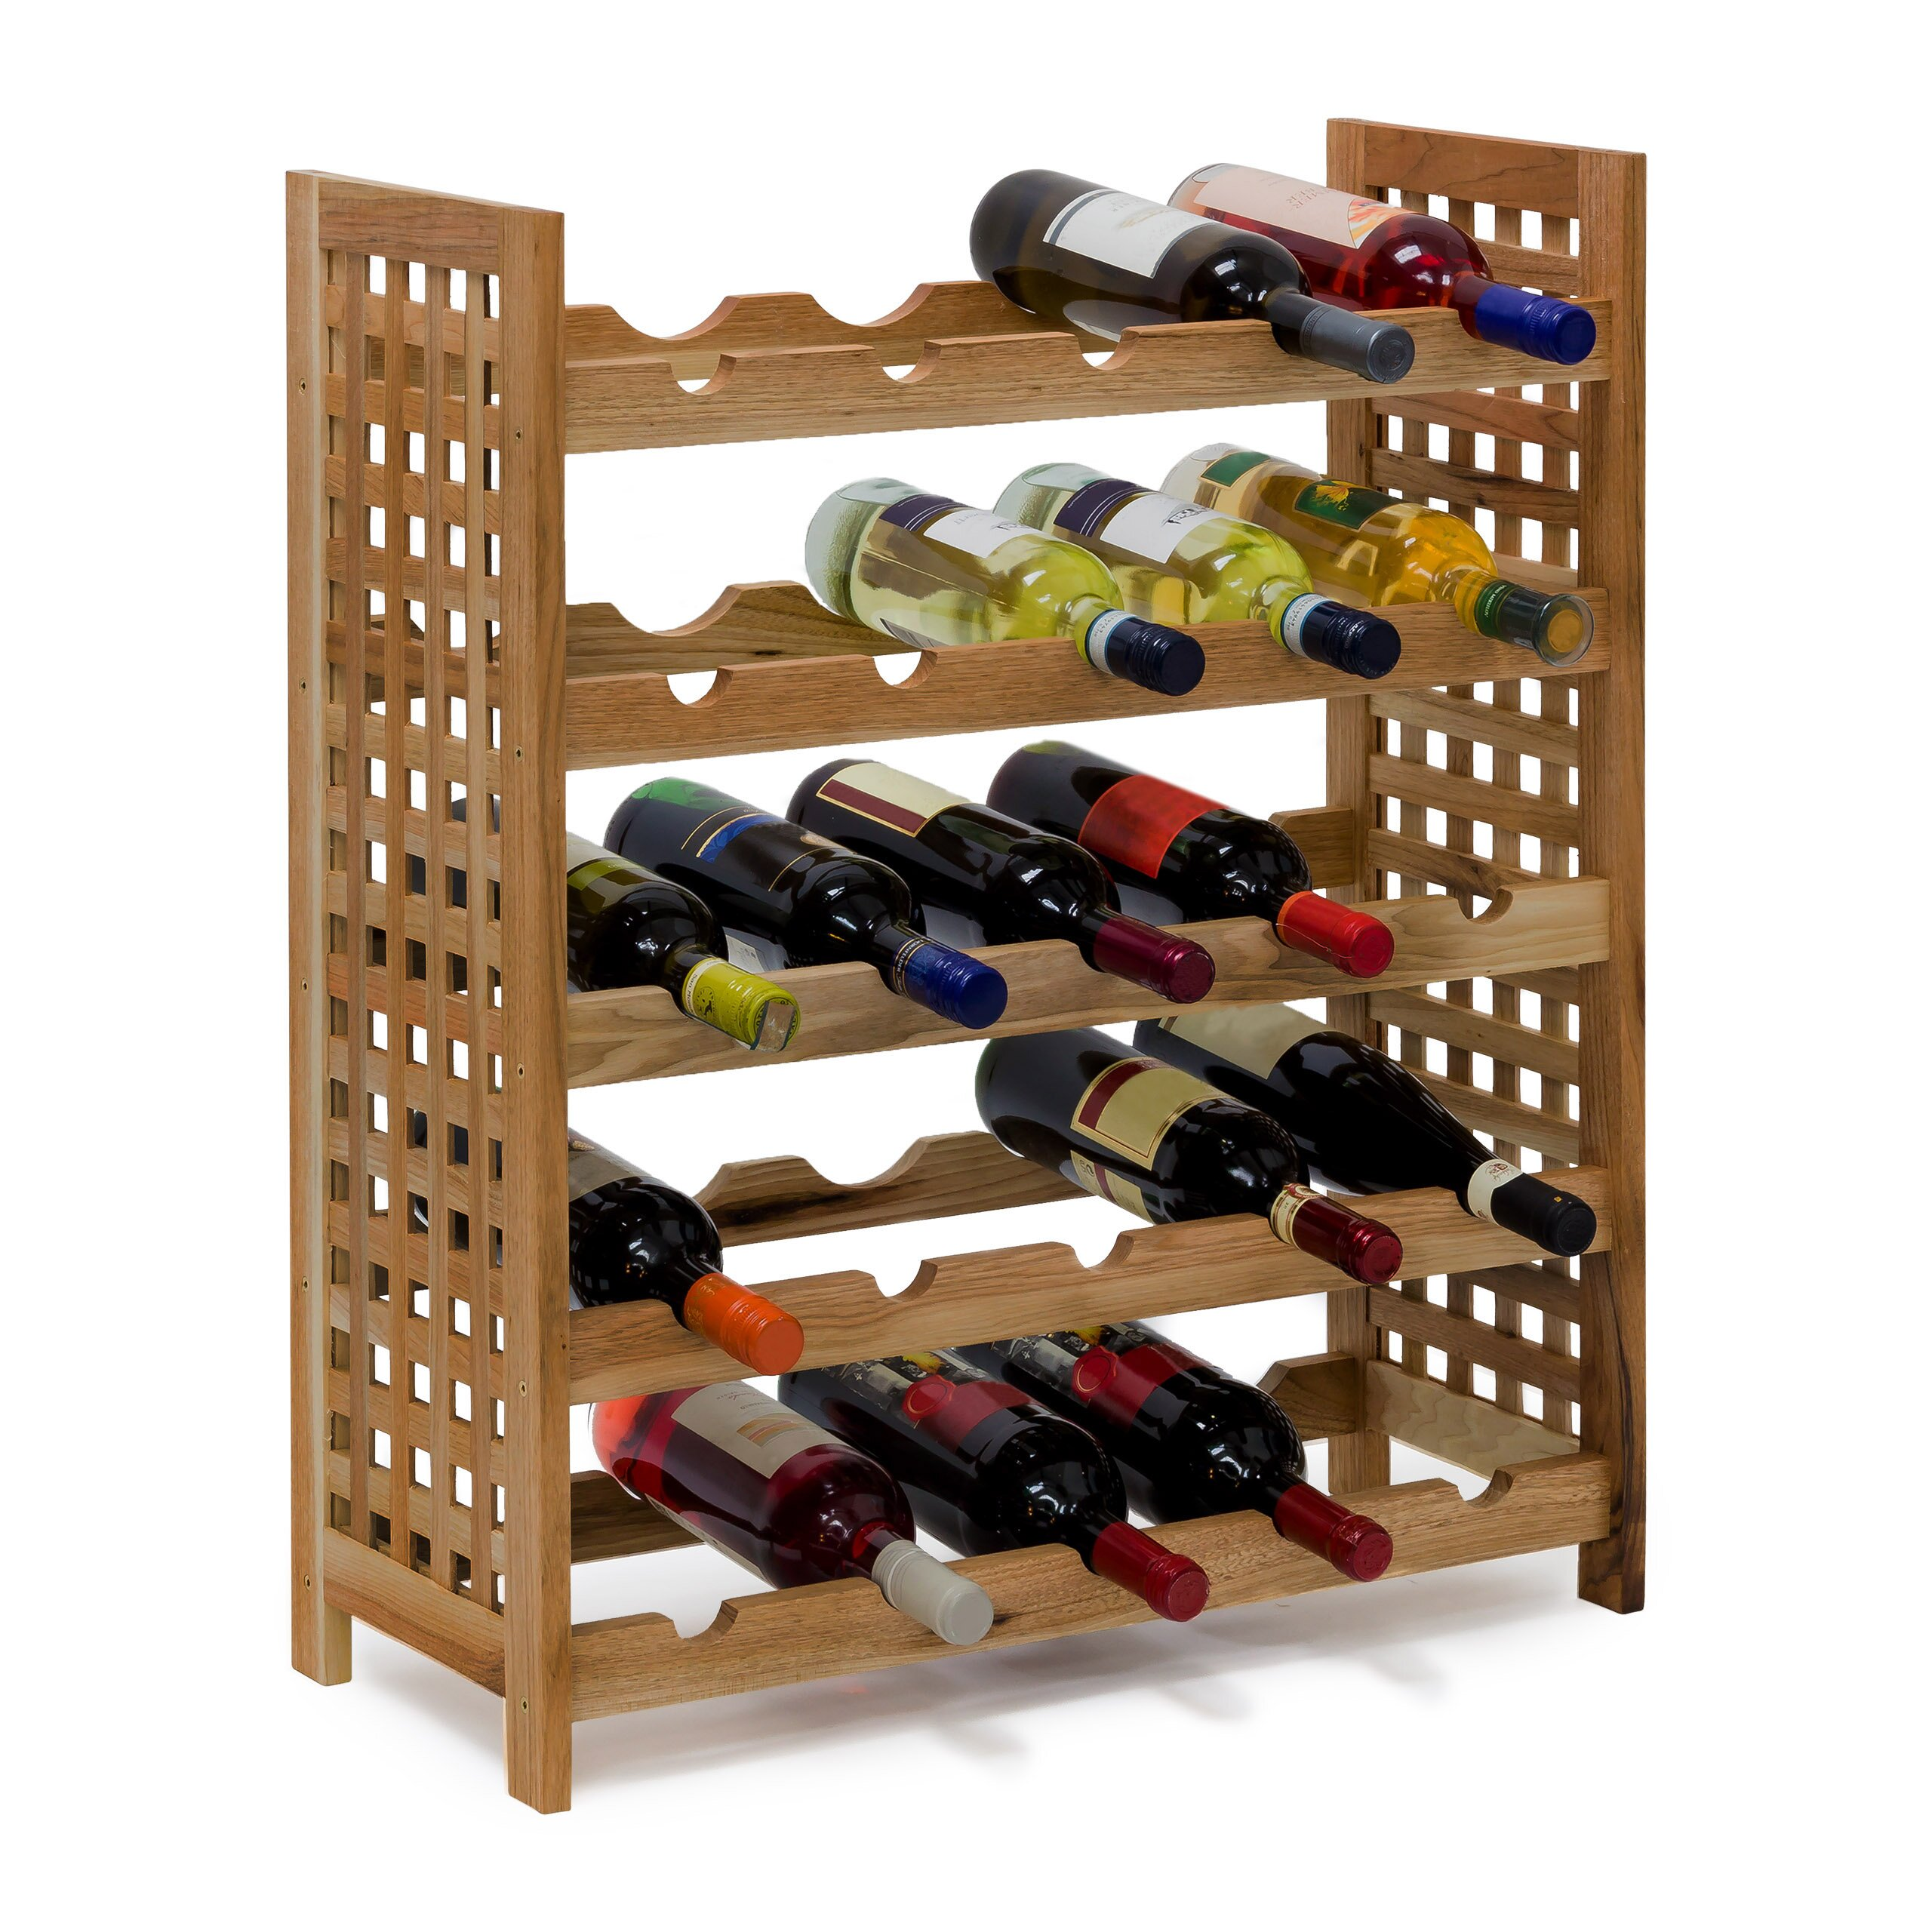 Floor Wine Rack Of Castleton Home 25 Bottle Floor Wine Rack Reviews